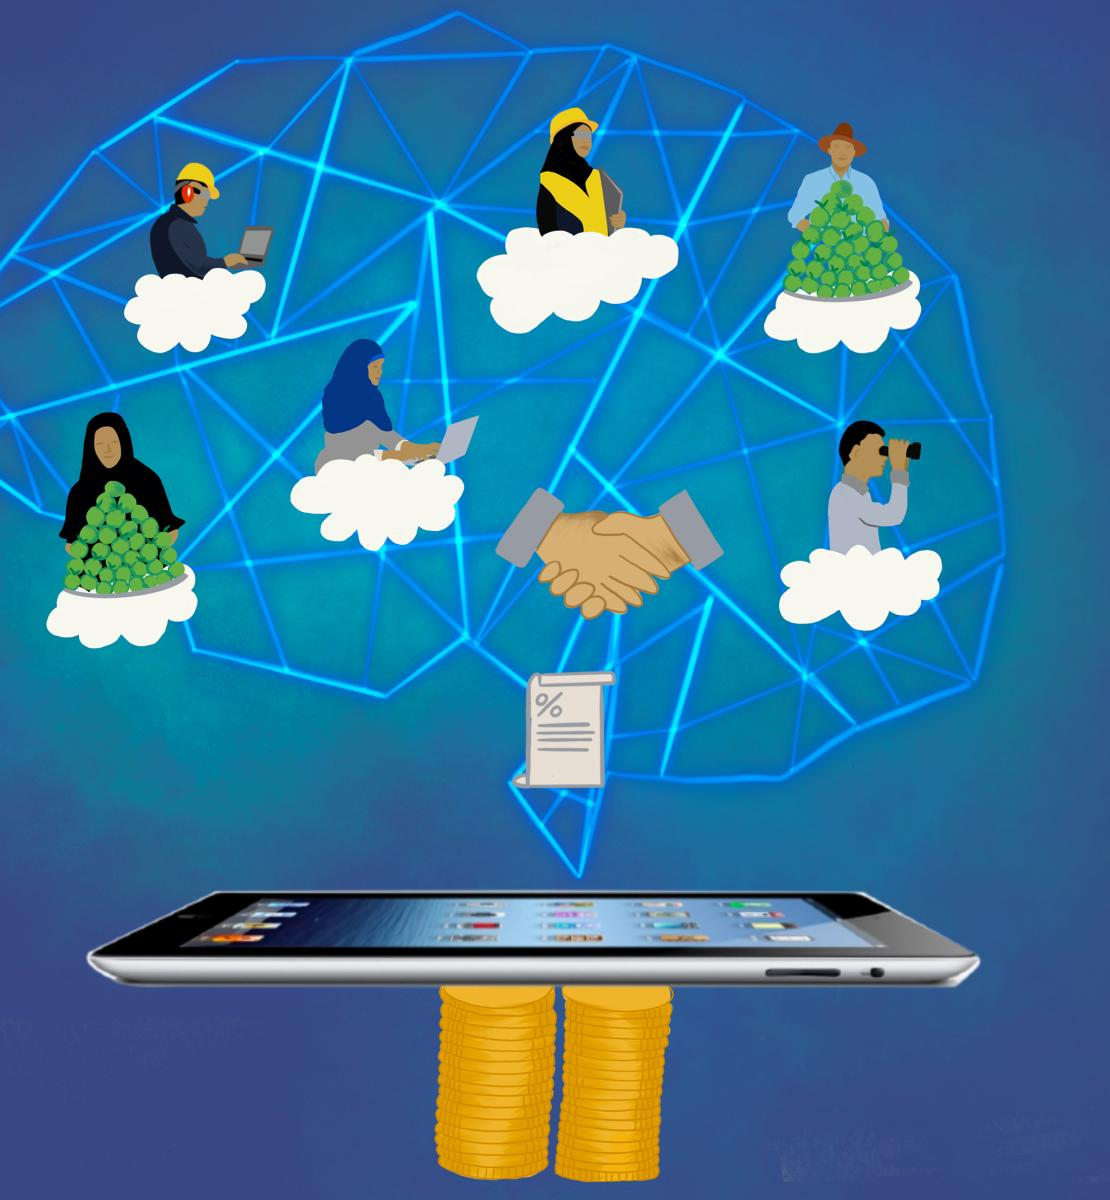 A variety of cartoon people interconnected via idea bubbles in the shape of a brain all arising from an Ipad.